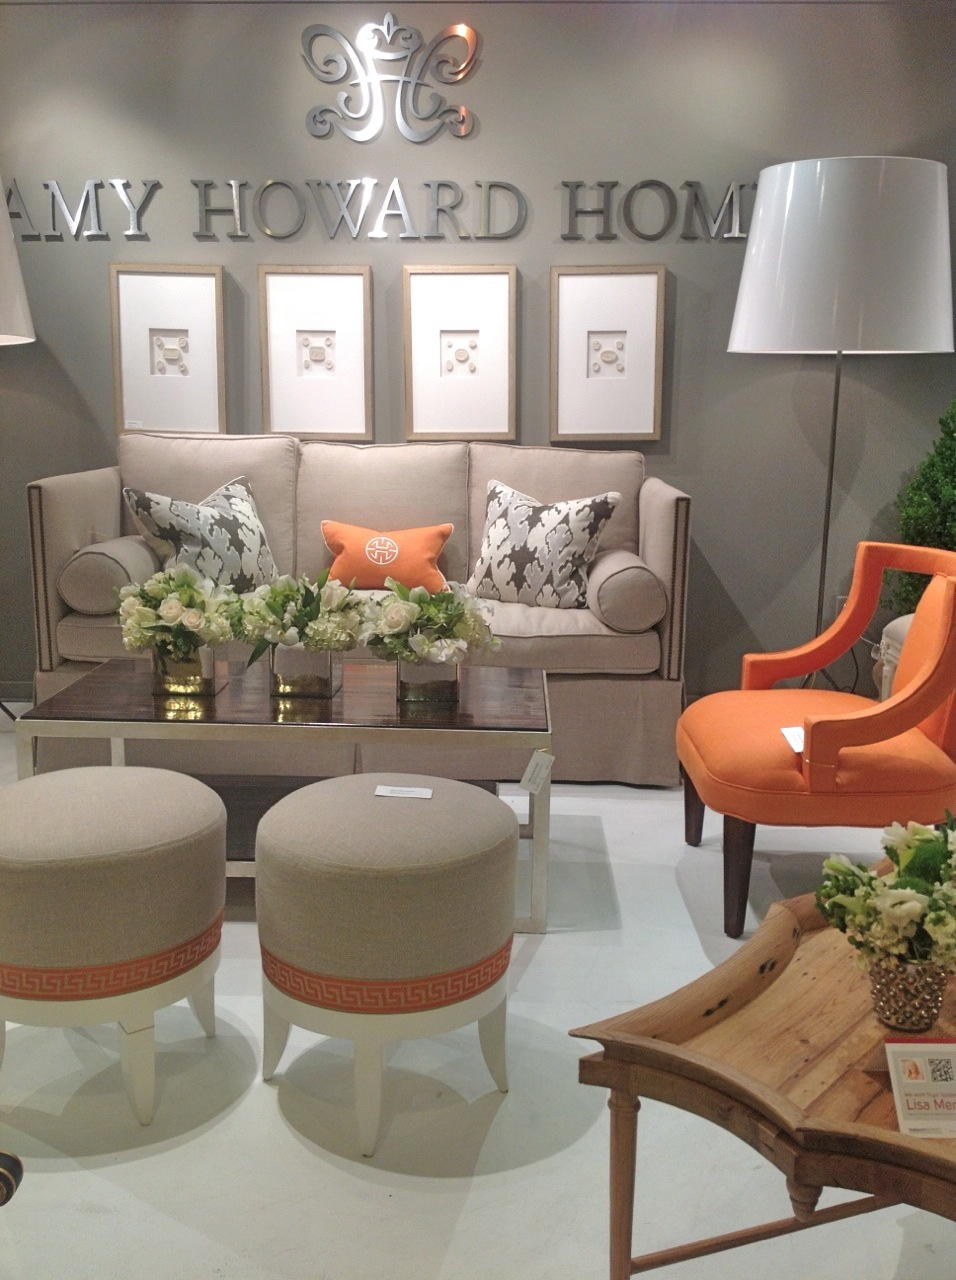 In Spite Of The Large Signage, It Took Us A Moment To Realize That We Were  Appreciating The New Furniture Line Of Our Friend, Amy Howard.